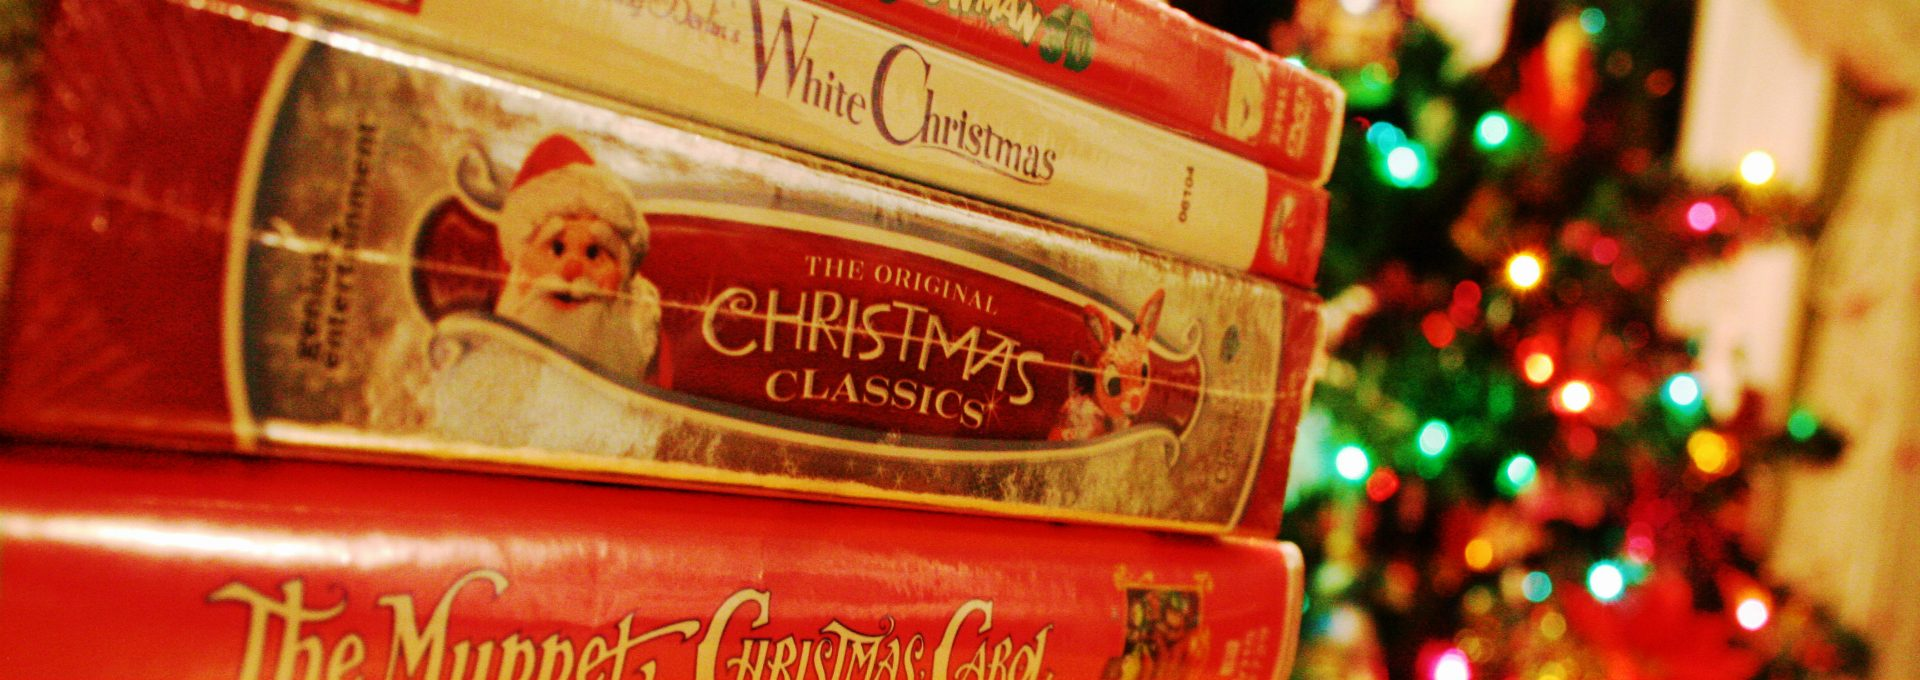 The 10 Best Christmas Movies of All Time to Make Holidays Even Merrier - Best Christmas Films - Christmas 2017 - Best Christmas Tips Ever - Best Christmas Films ➤ Discover the season's newest design news and inspiration ideas. Visit Daily Design News and subscribe our newsletter! #dailydesignnews #designnews #Christmas2017 #ChristmasTips #ChristmasFilms #ChristmasMovies